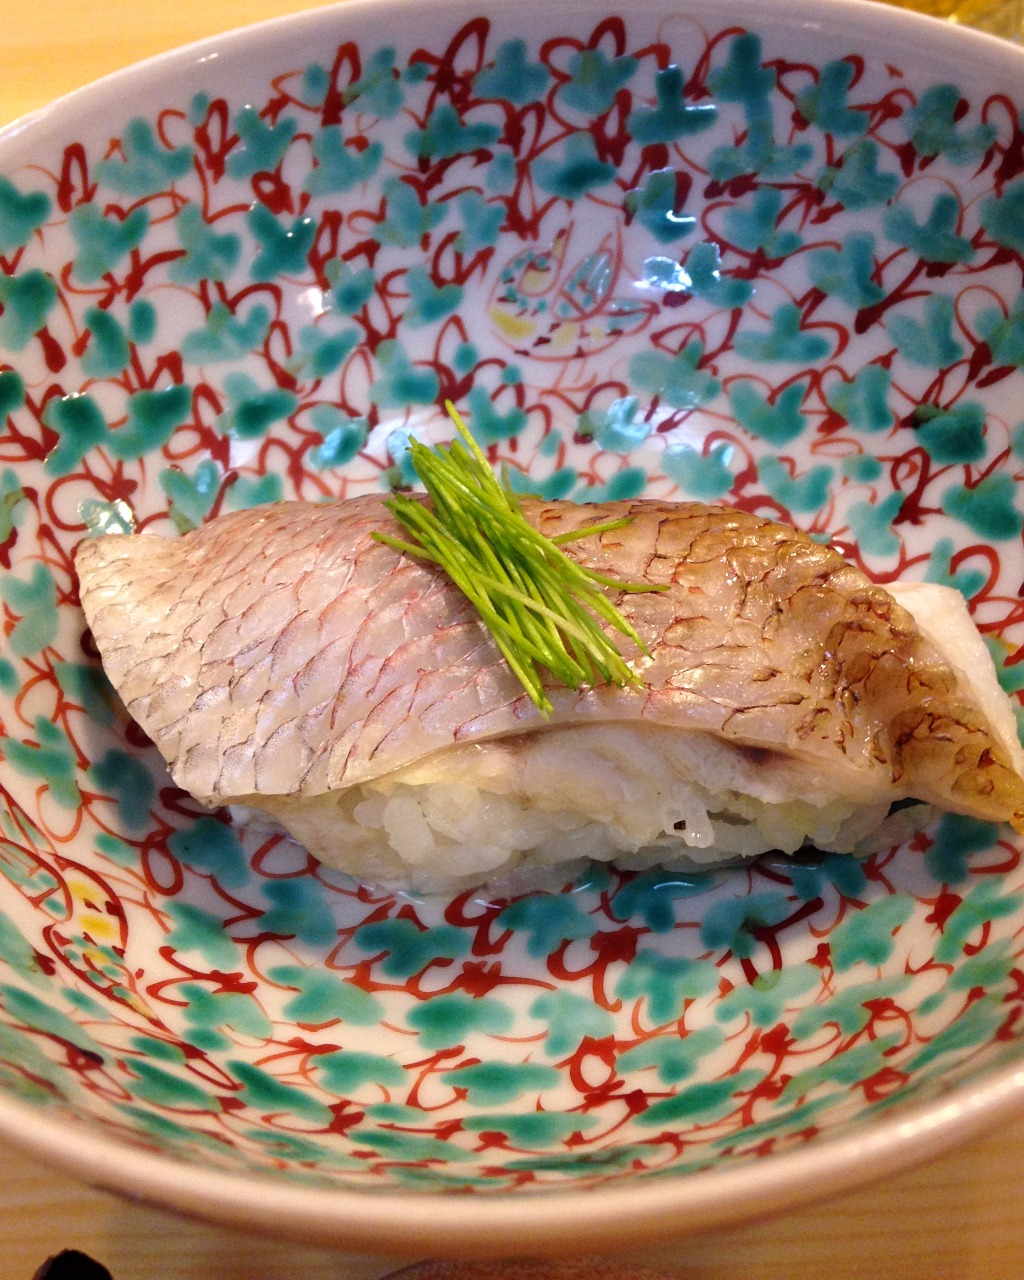 Steamed black throat sea perch, nodoguro, a speacialty of Kanazawa, Japan